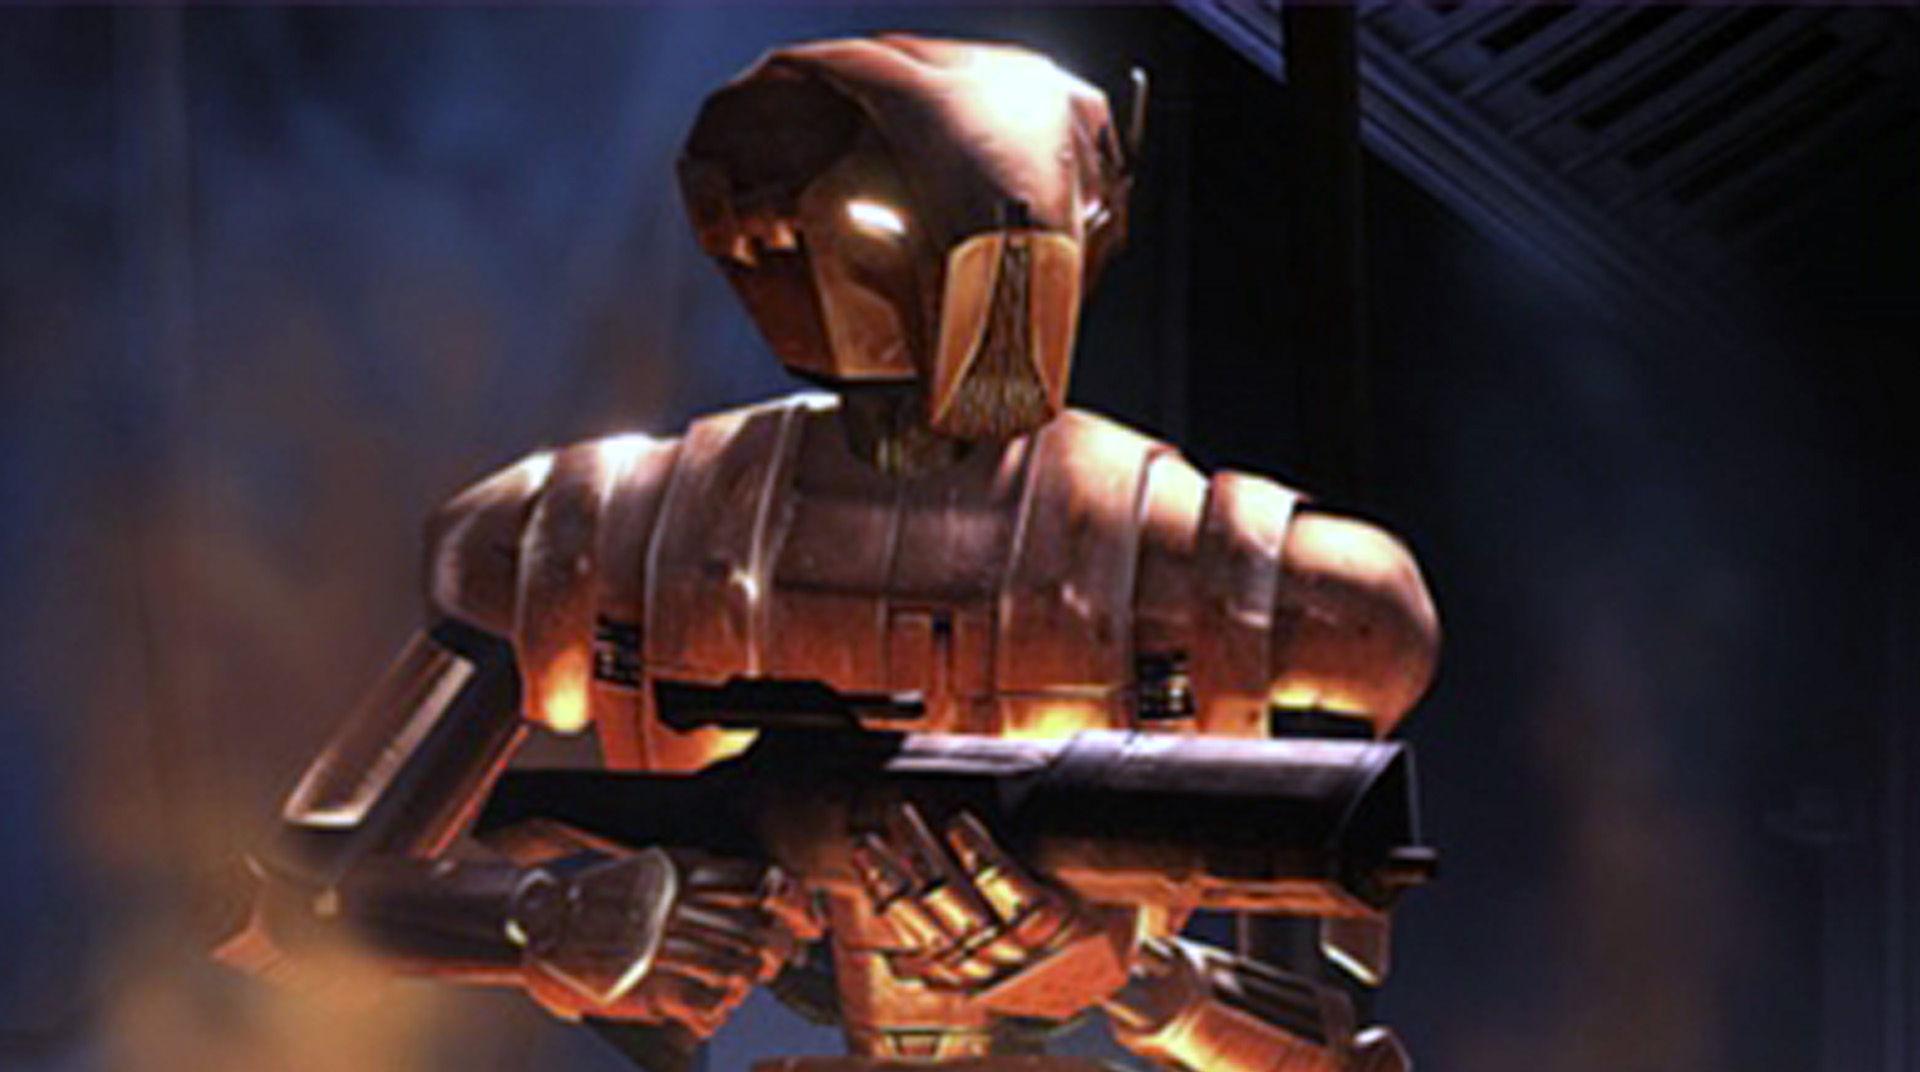 KOTOR Remake was almost a remastered collection by Baldur's Gate devs